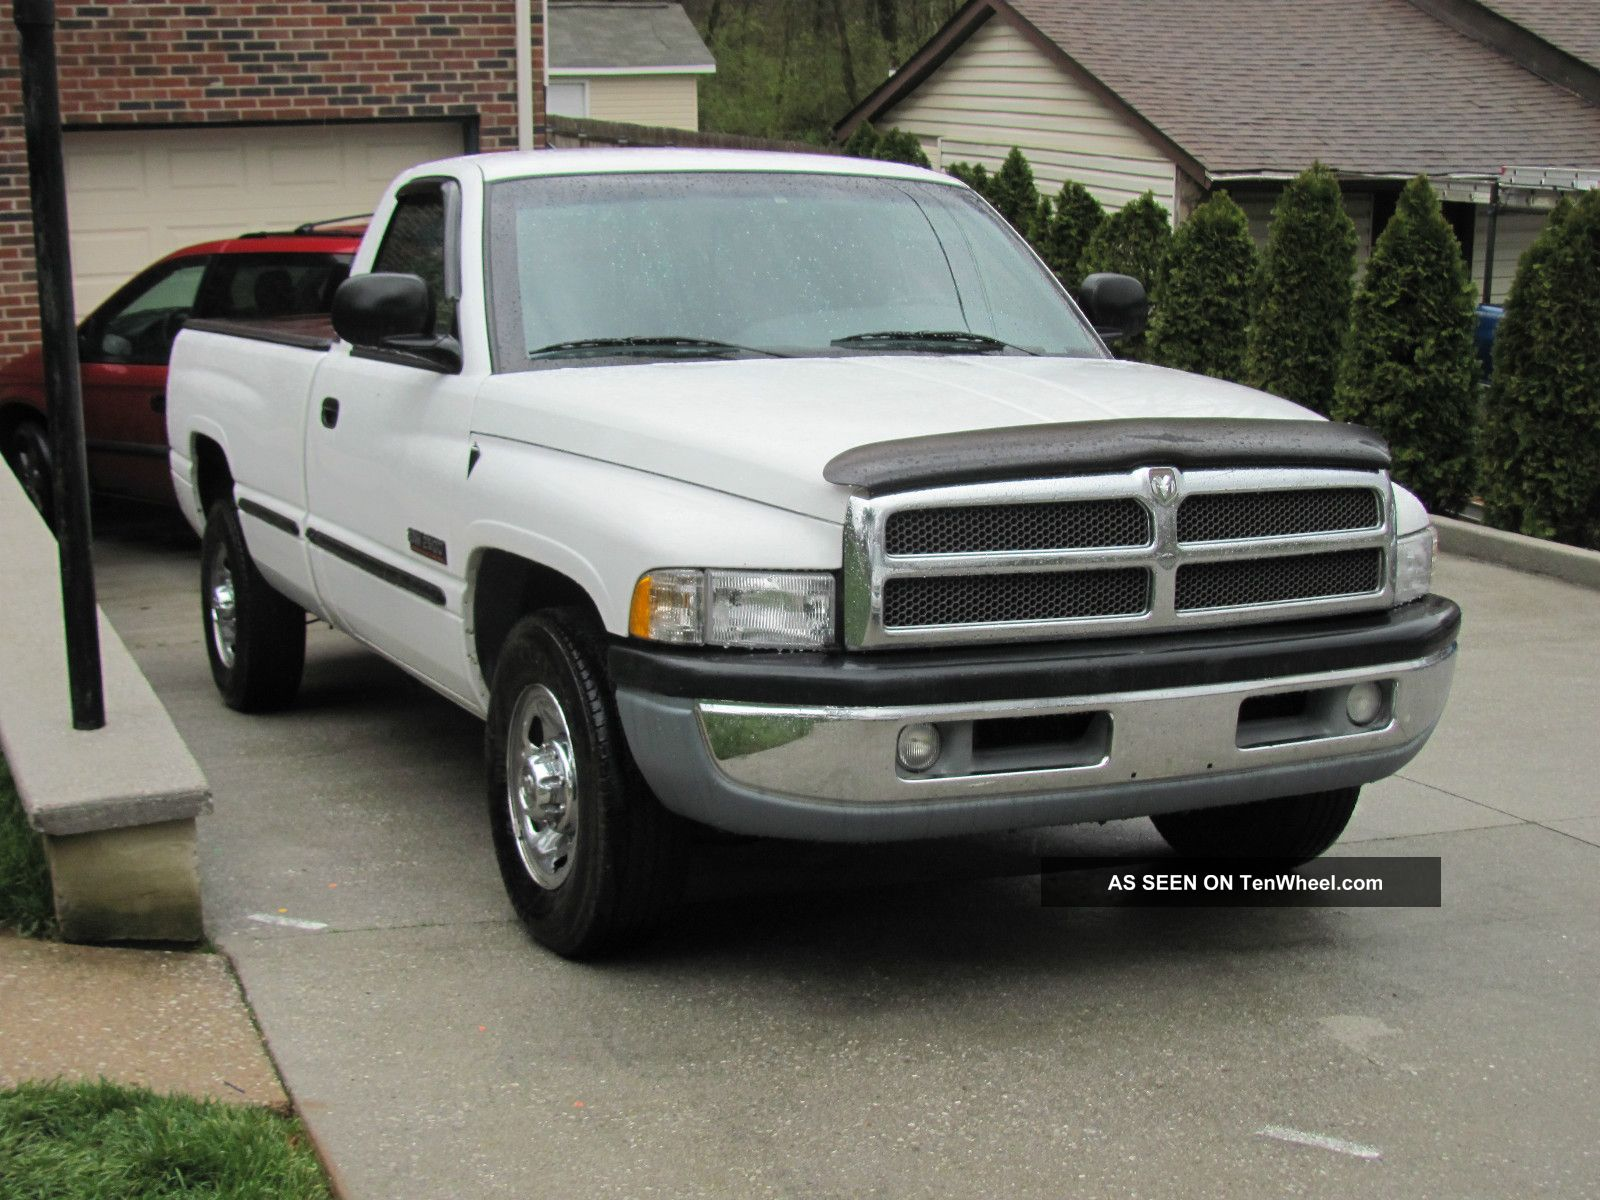 1998 Dodge Ram 2500 Diesel Laramie Long Bed 4x2 Pickup